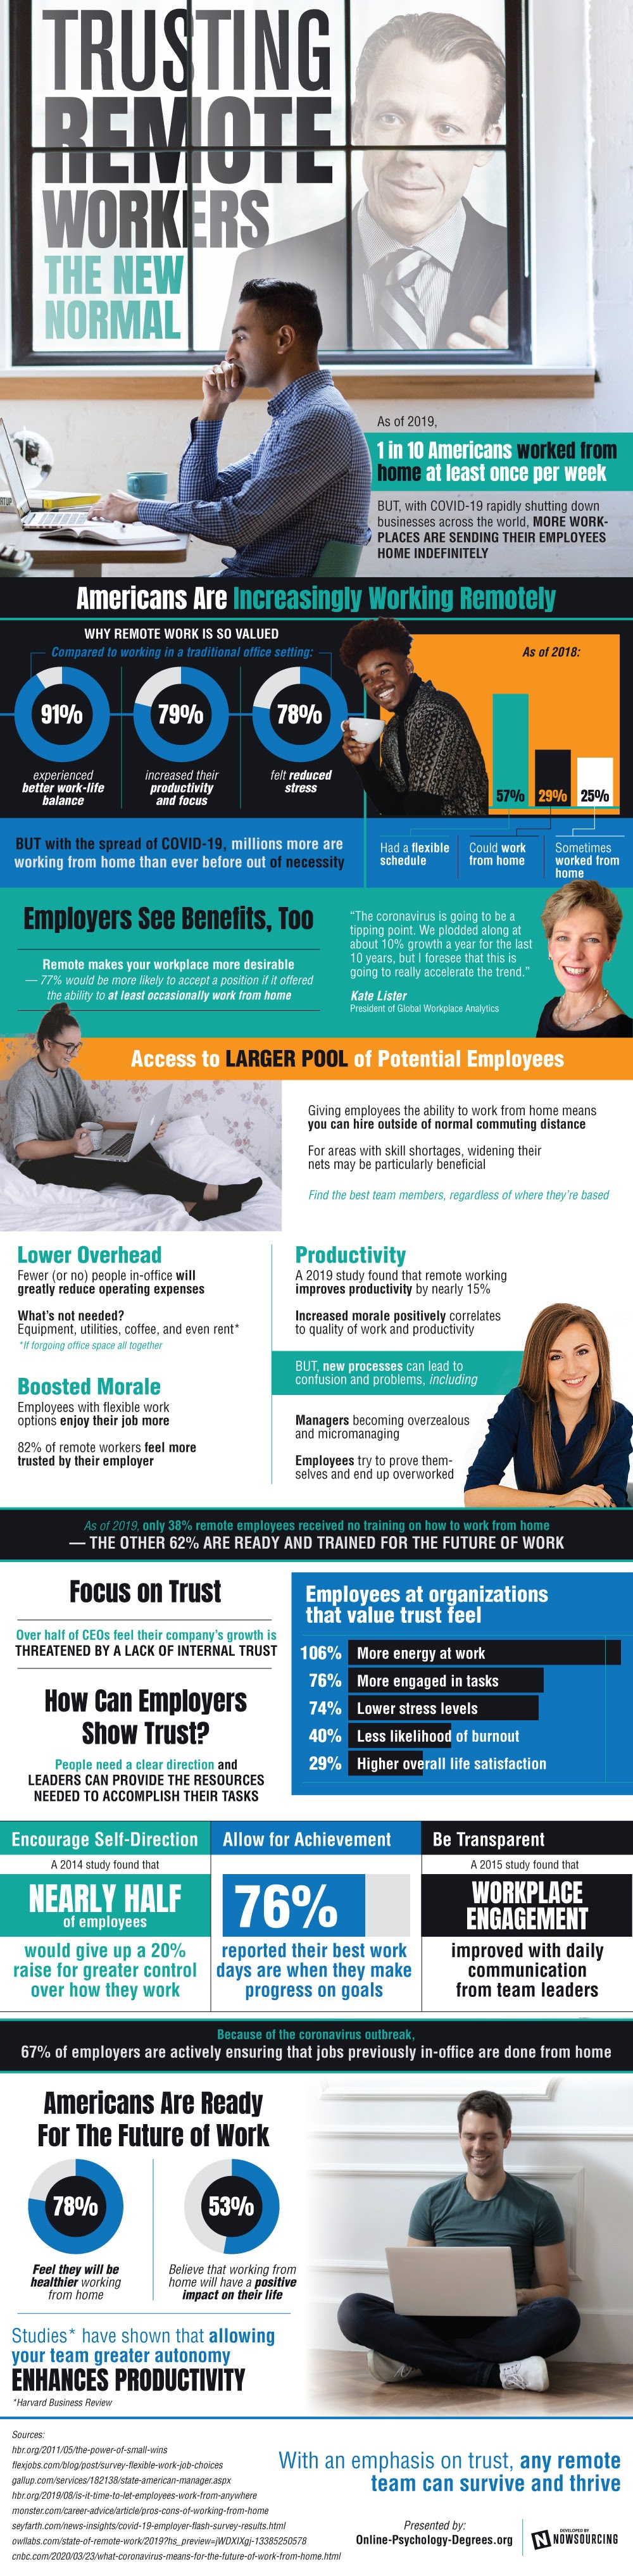 Trusting Remote Workers The New Normal #infographic